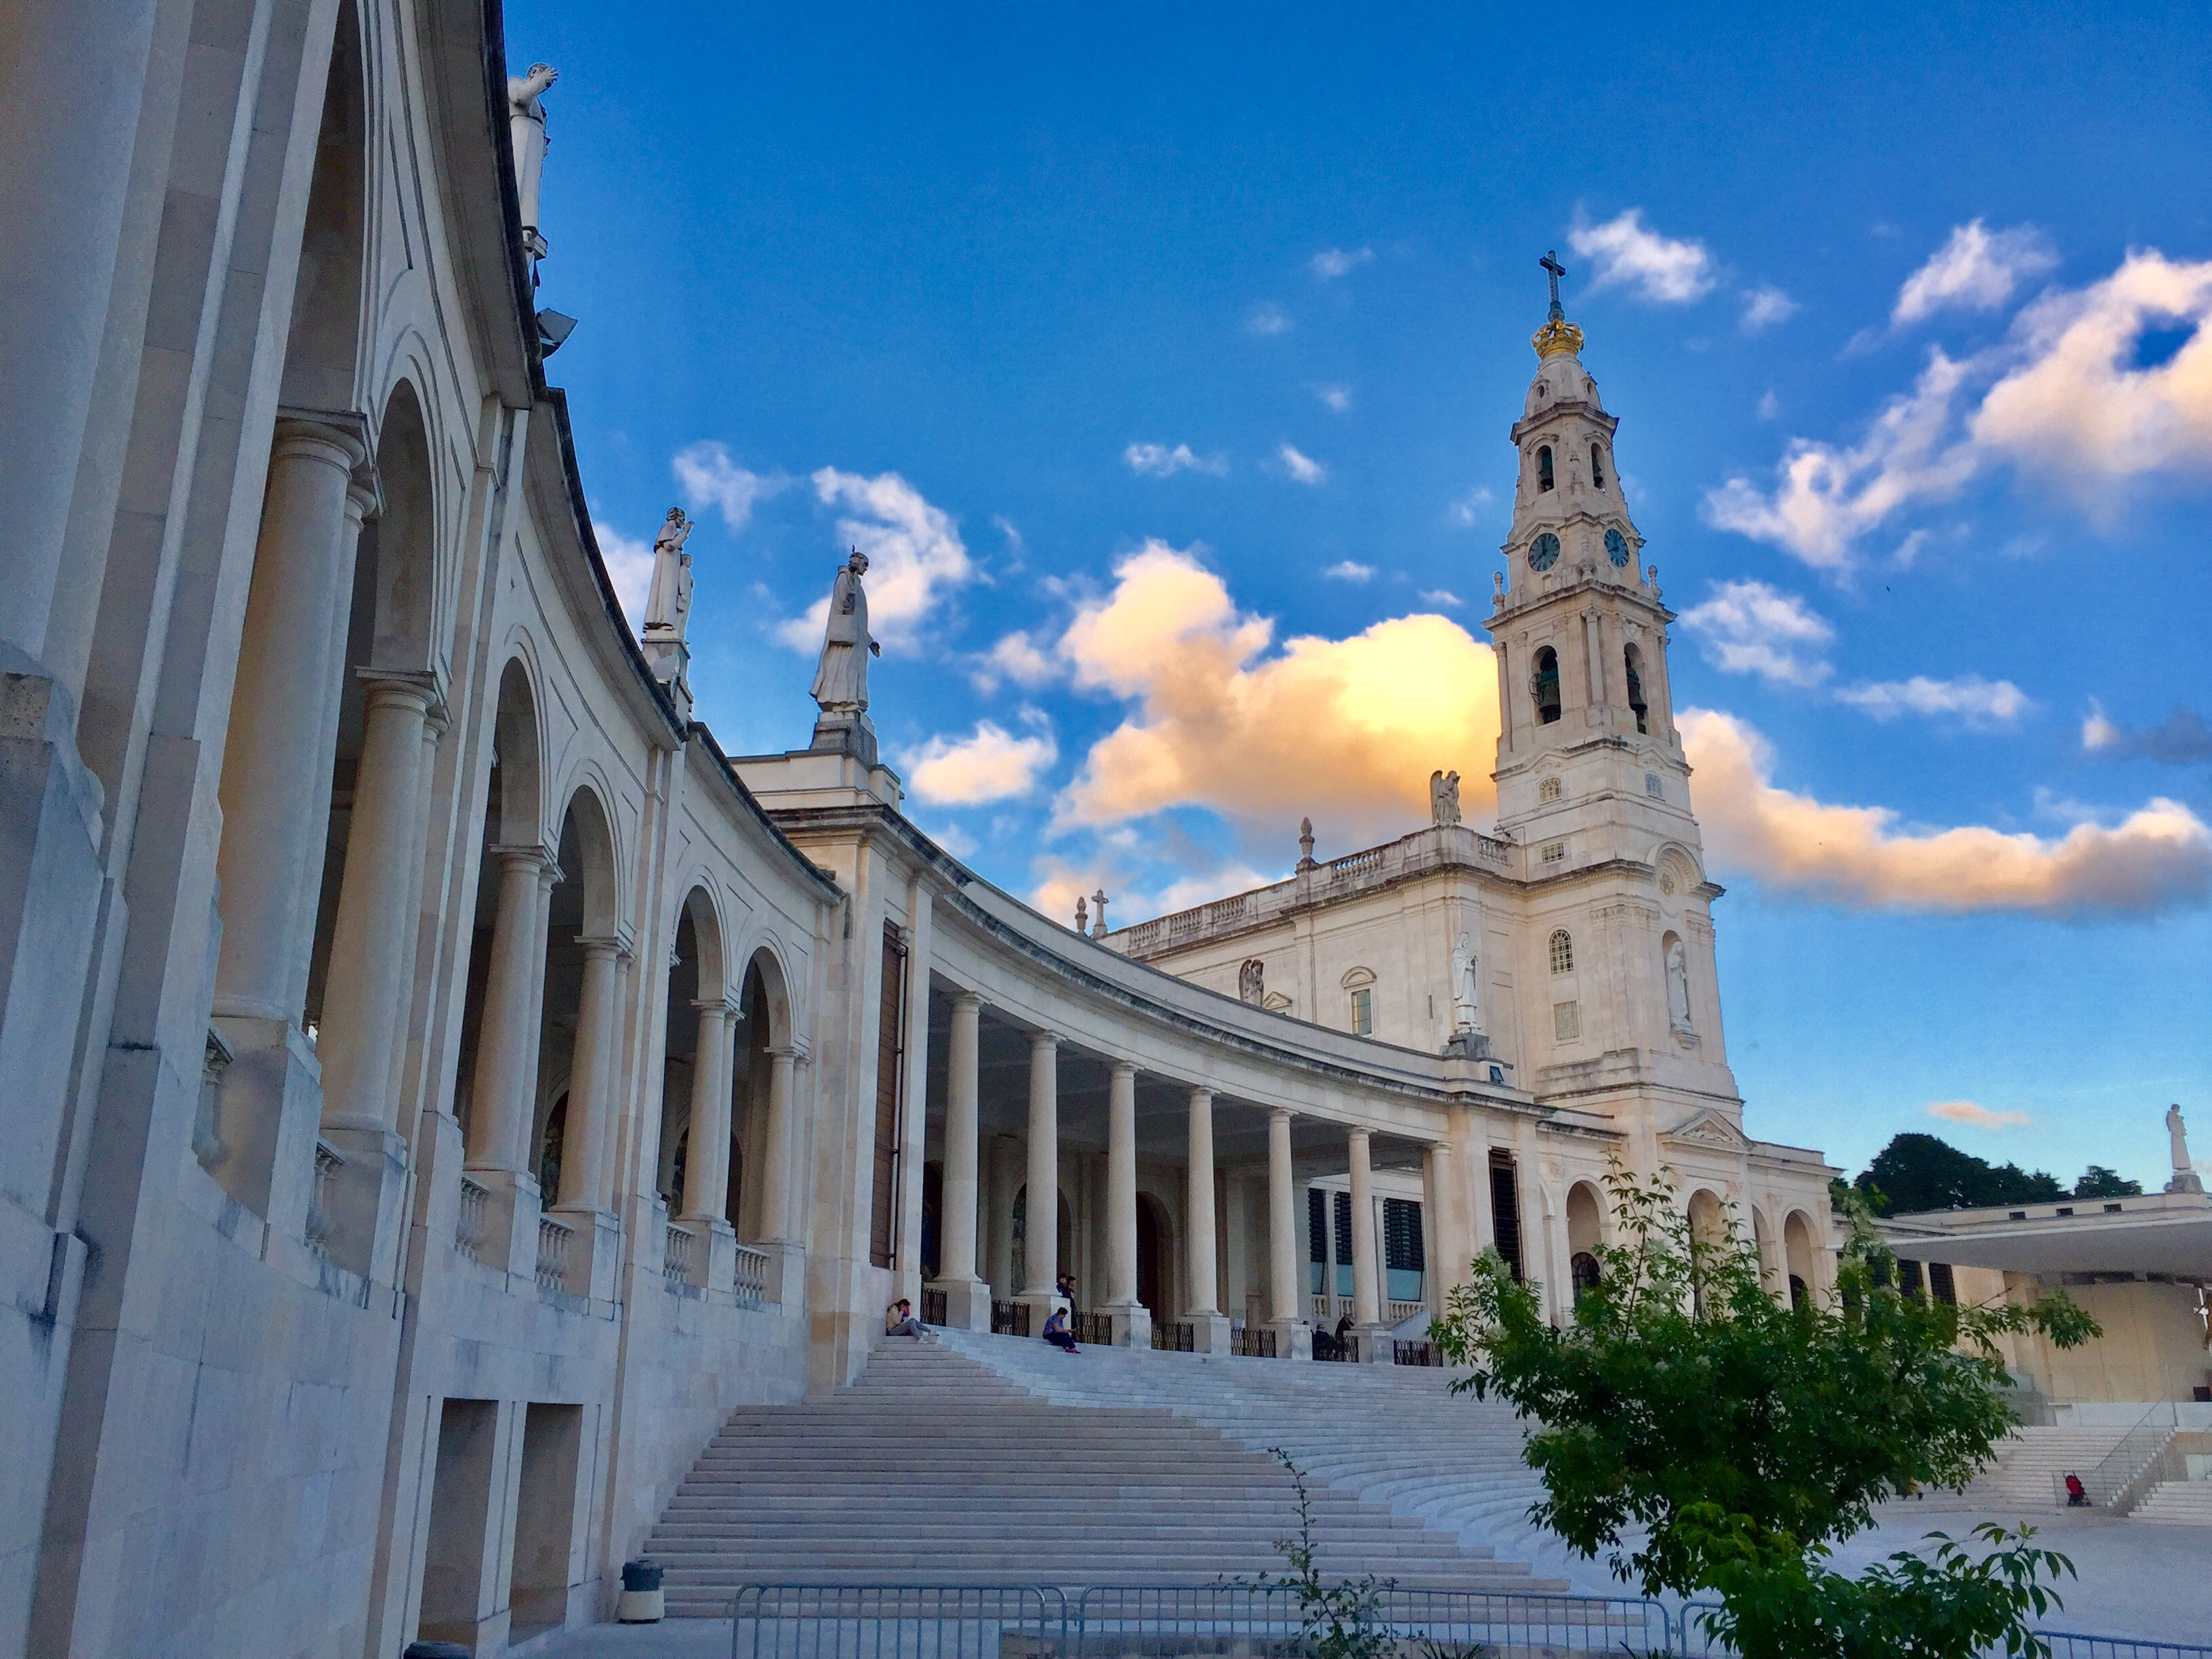 Basilica of Our Lady in Fatima